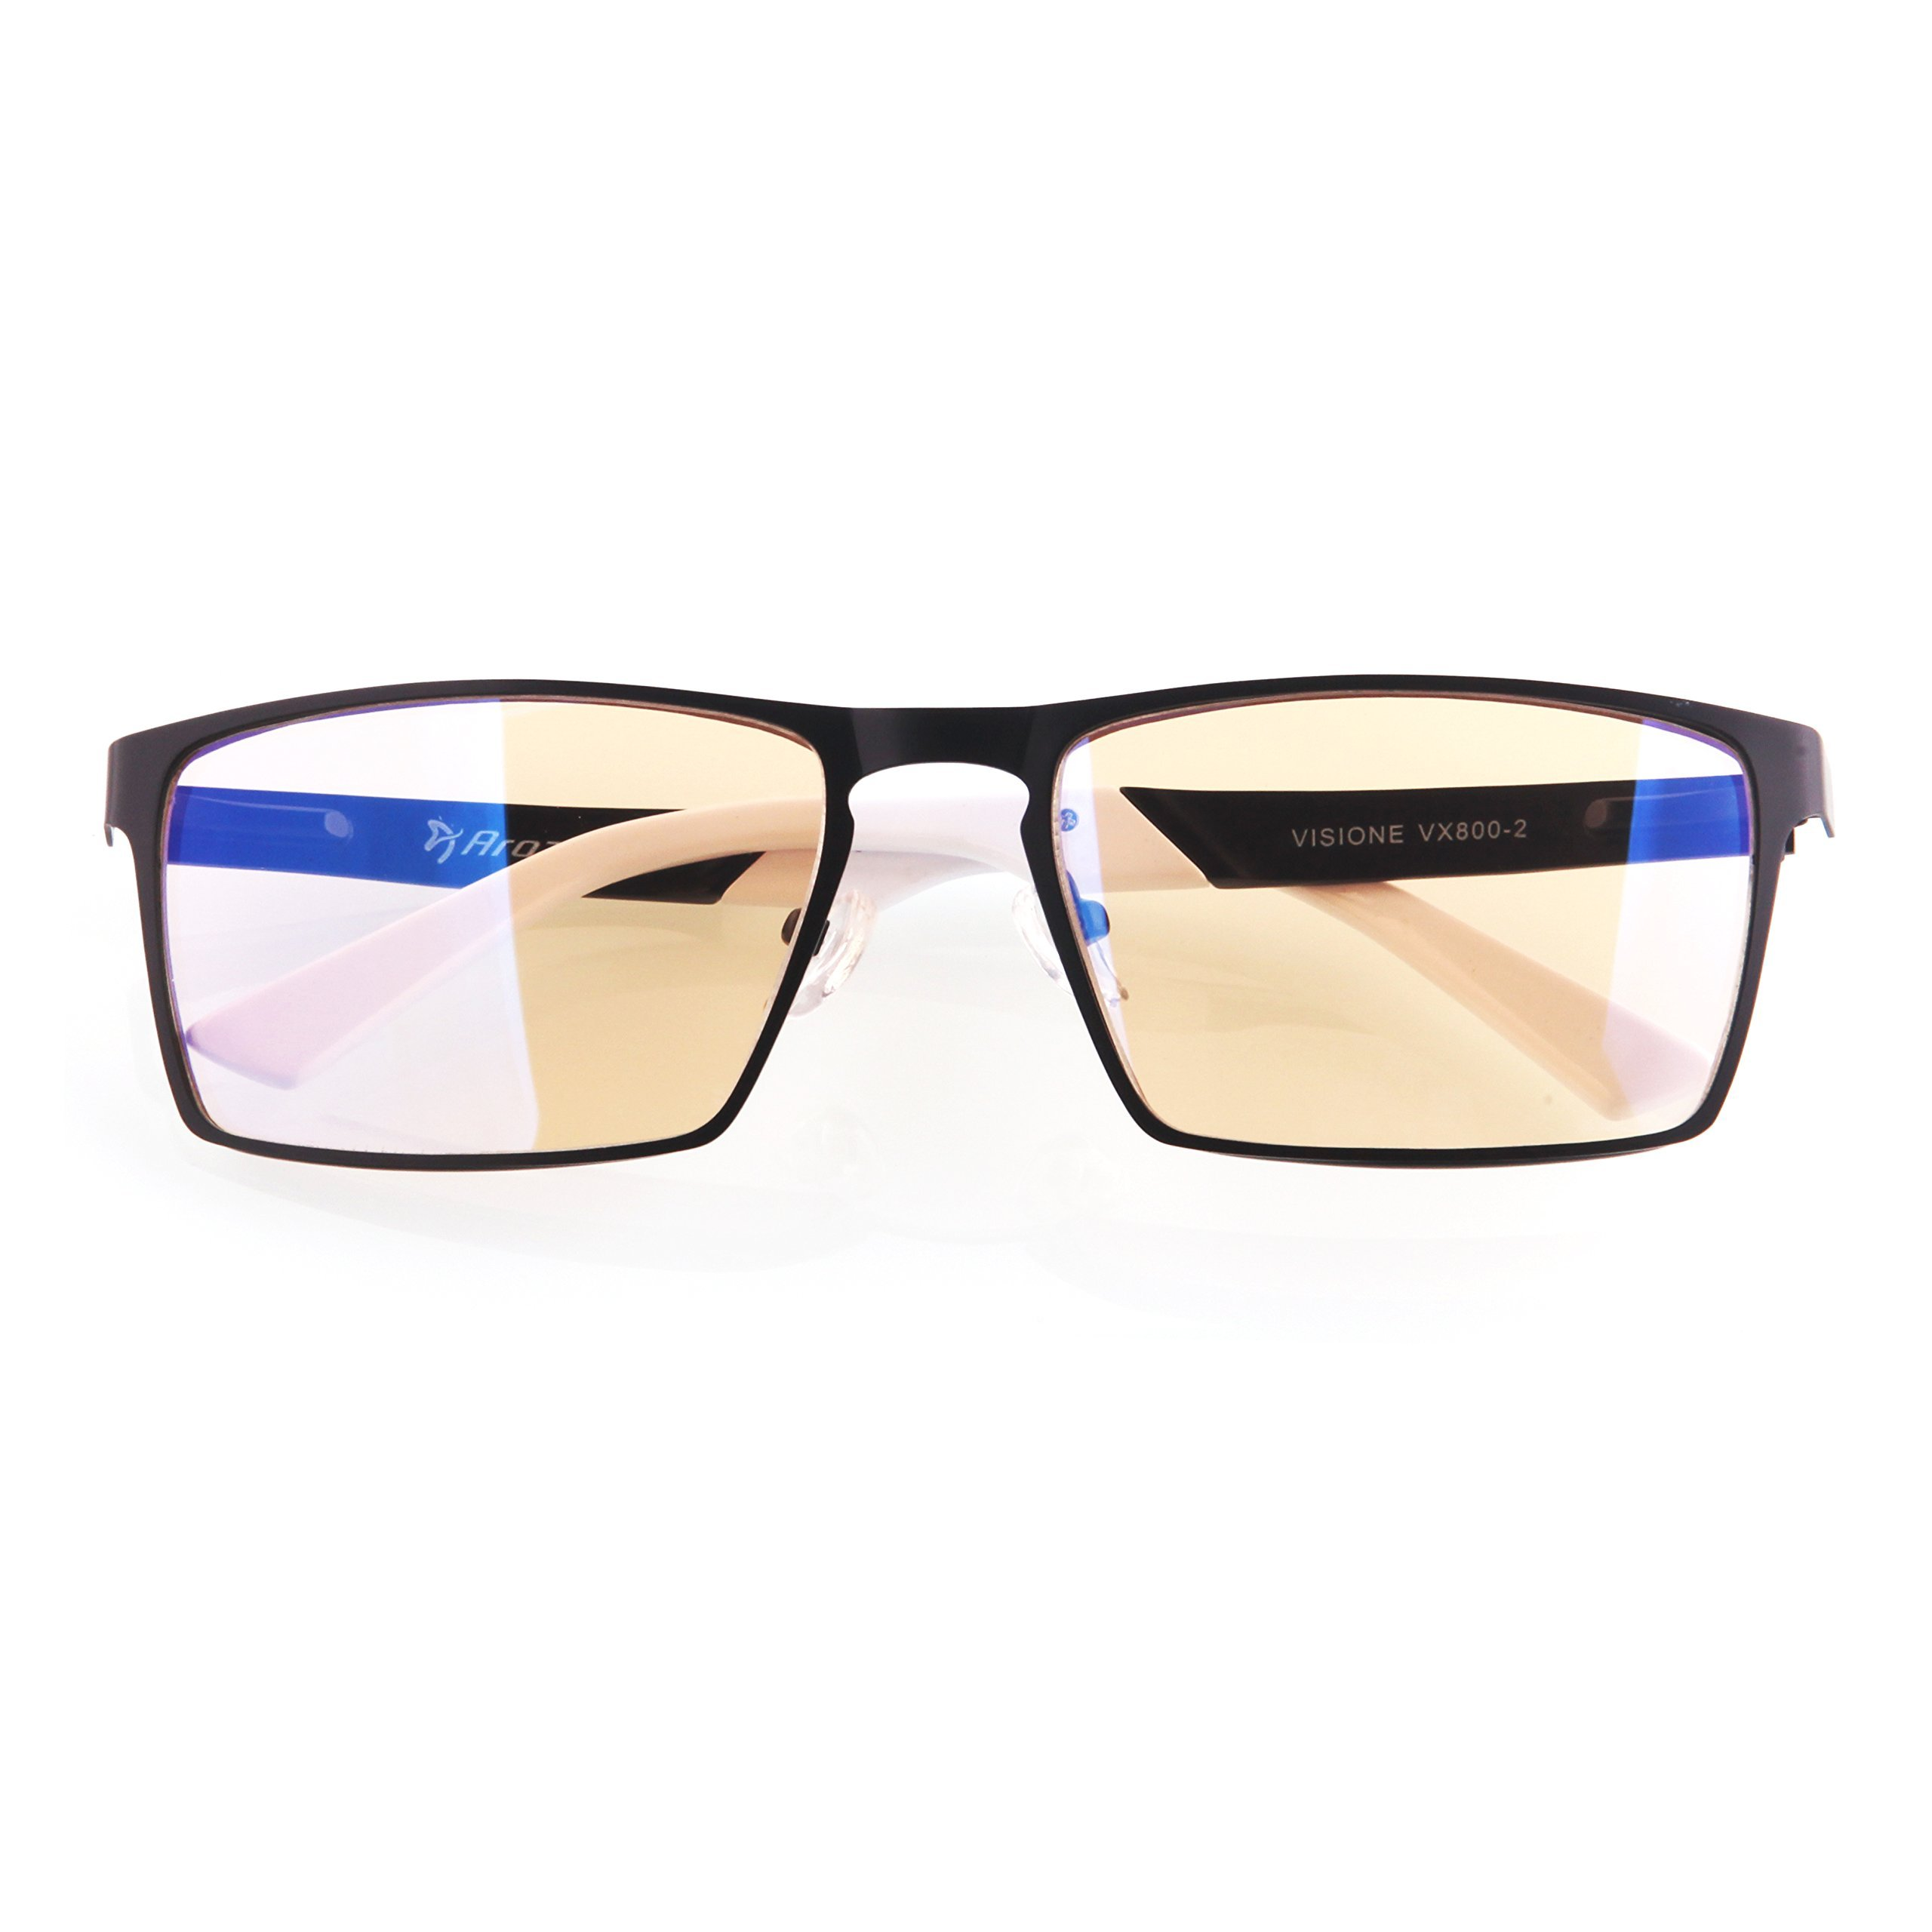 Arozzi Visione VX-800 Computer gaming glasses - Anti-glare, UV and Blue light protection, Eye strain relief, Comfortable gaming, Black